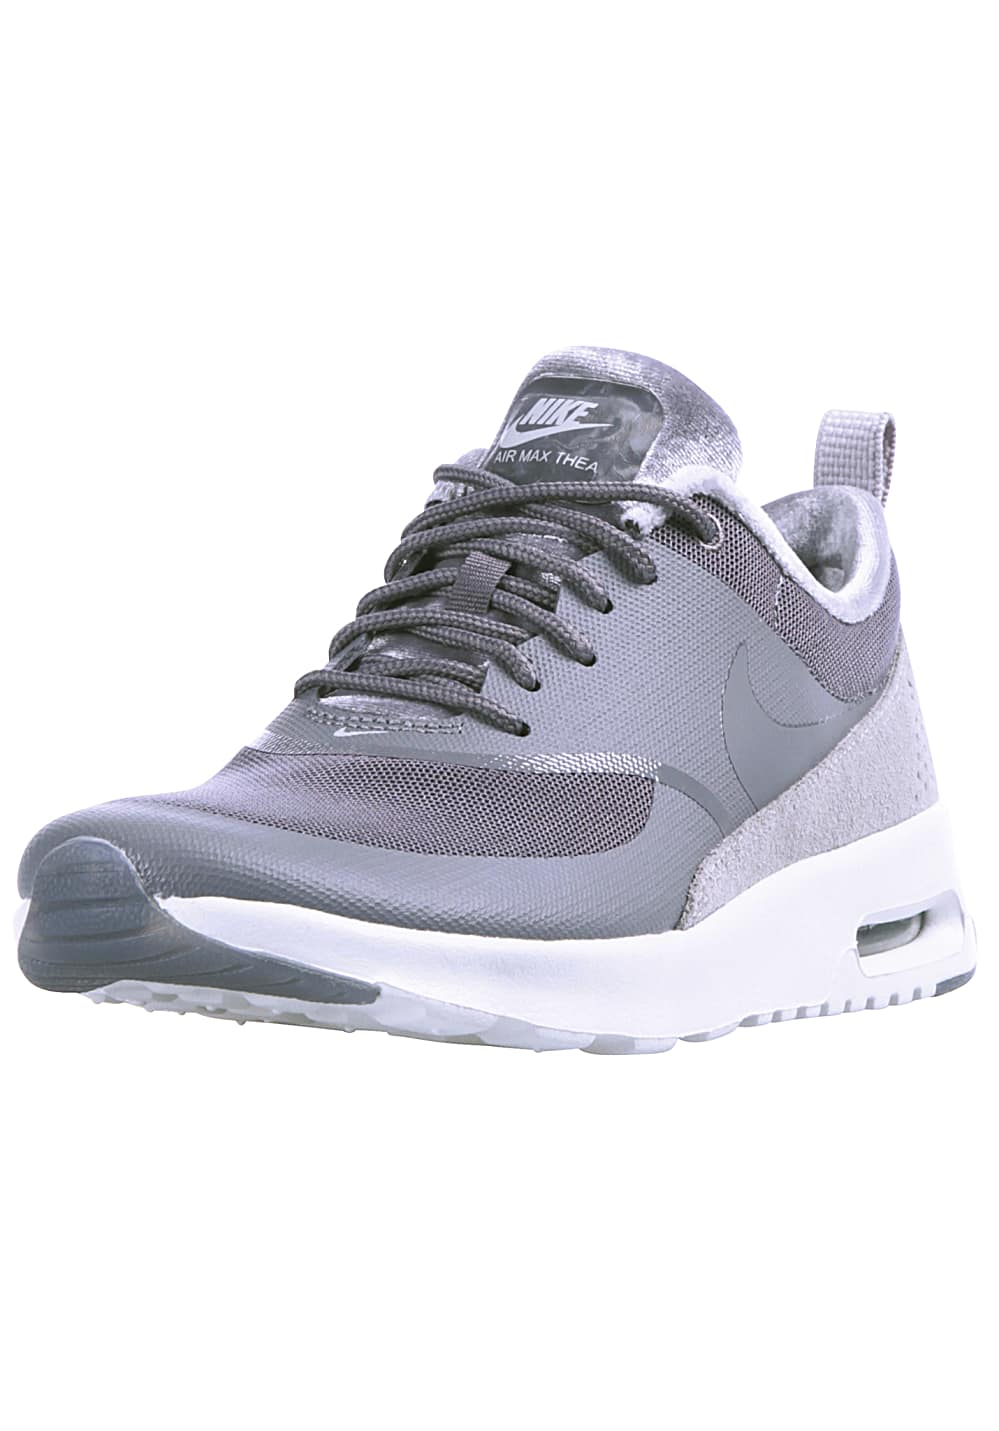 e6678c19347a NIKE SPORTSWEAR Air Max Thea LX - Sneakers voor Dames - Grijs ...